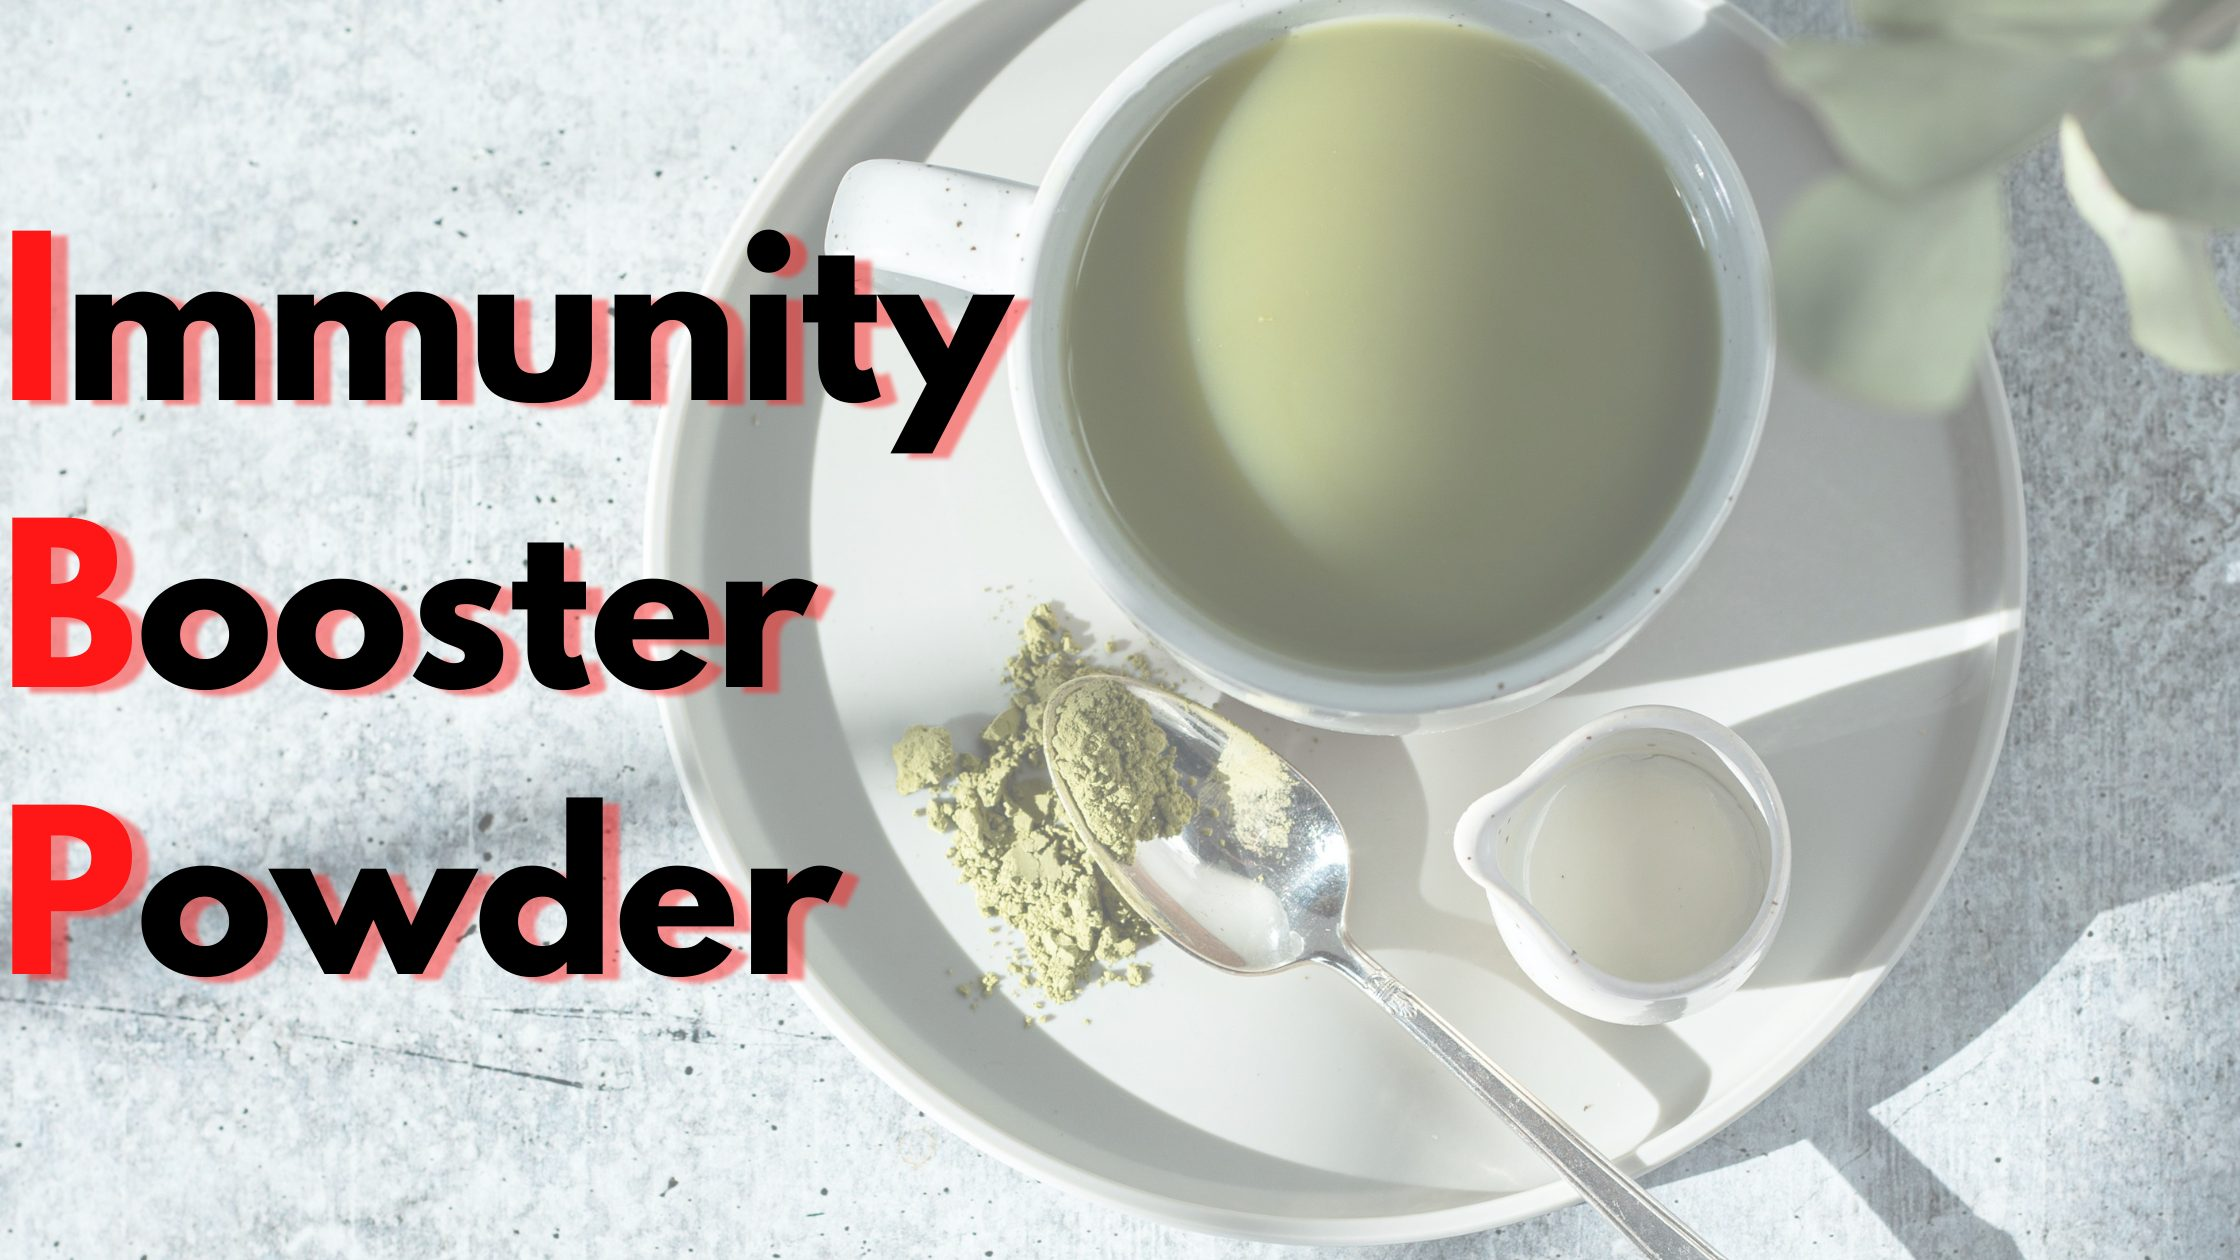 Immunity Booster Powder